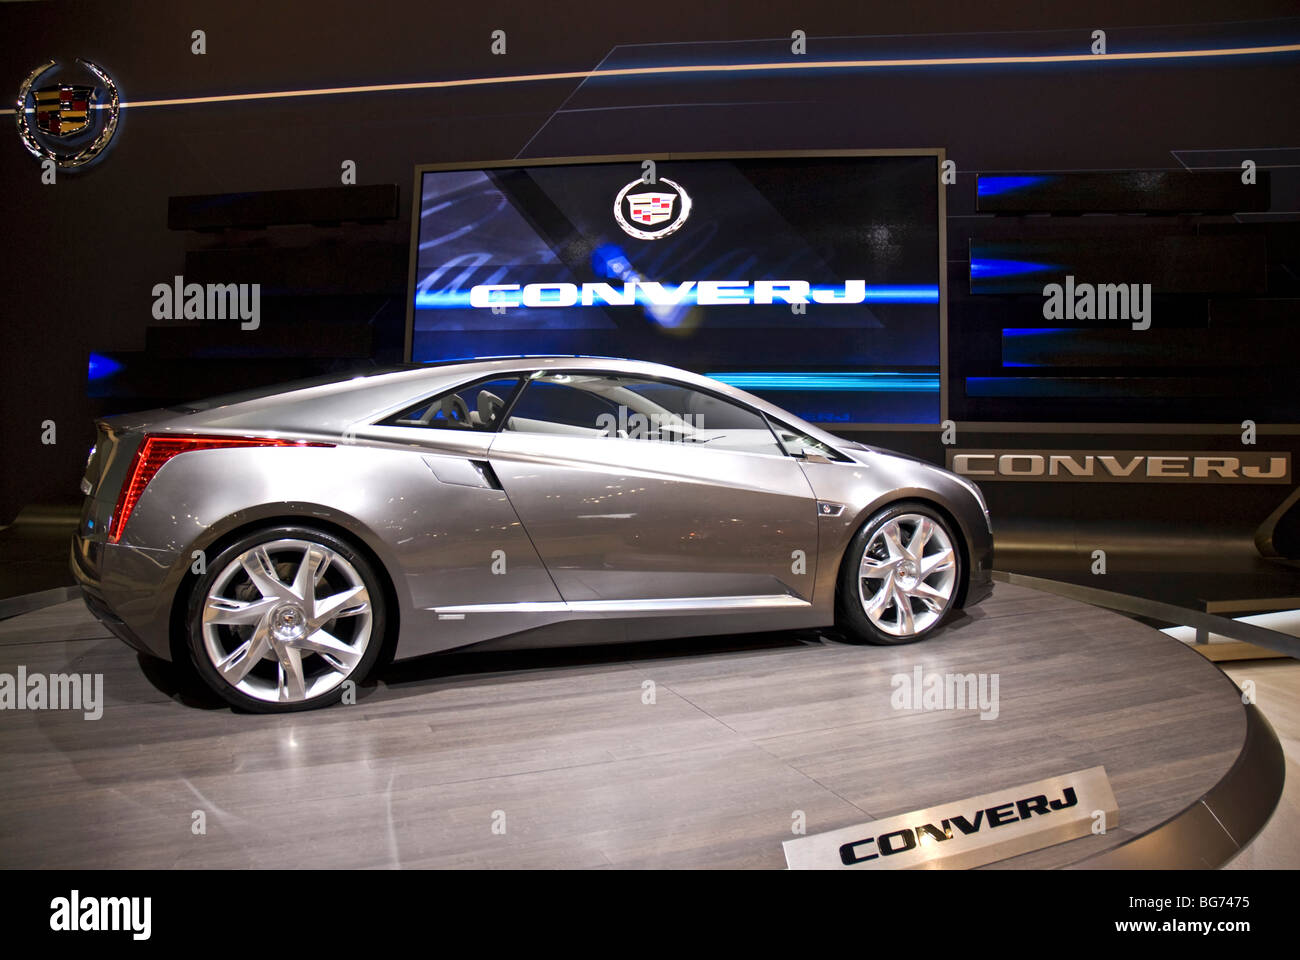 Gm design center stock photos gm design center stock images alamy the cadillac converj concept car at the 2009 la auto show in the los angeles convention publicscrutiny Image collections